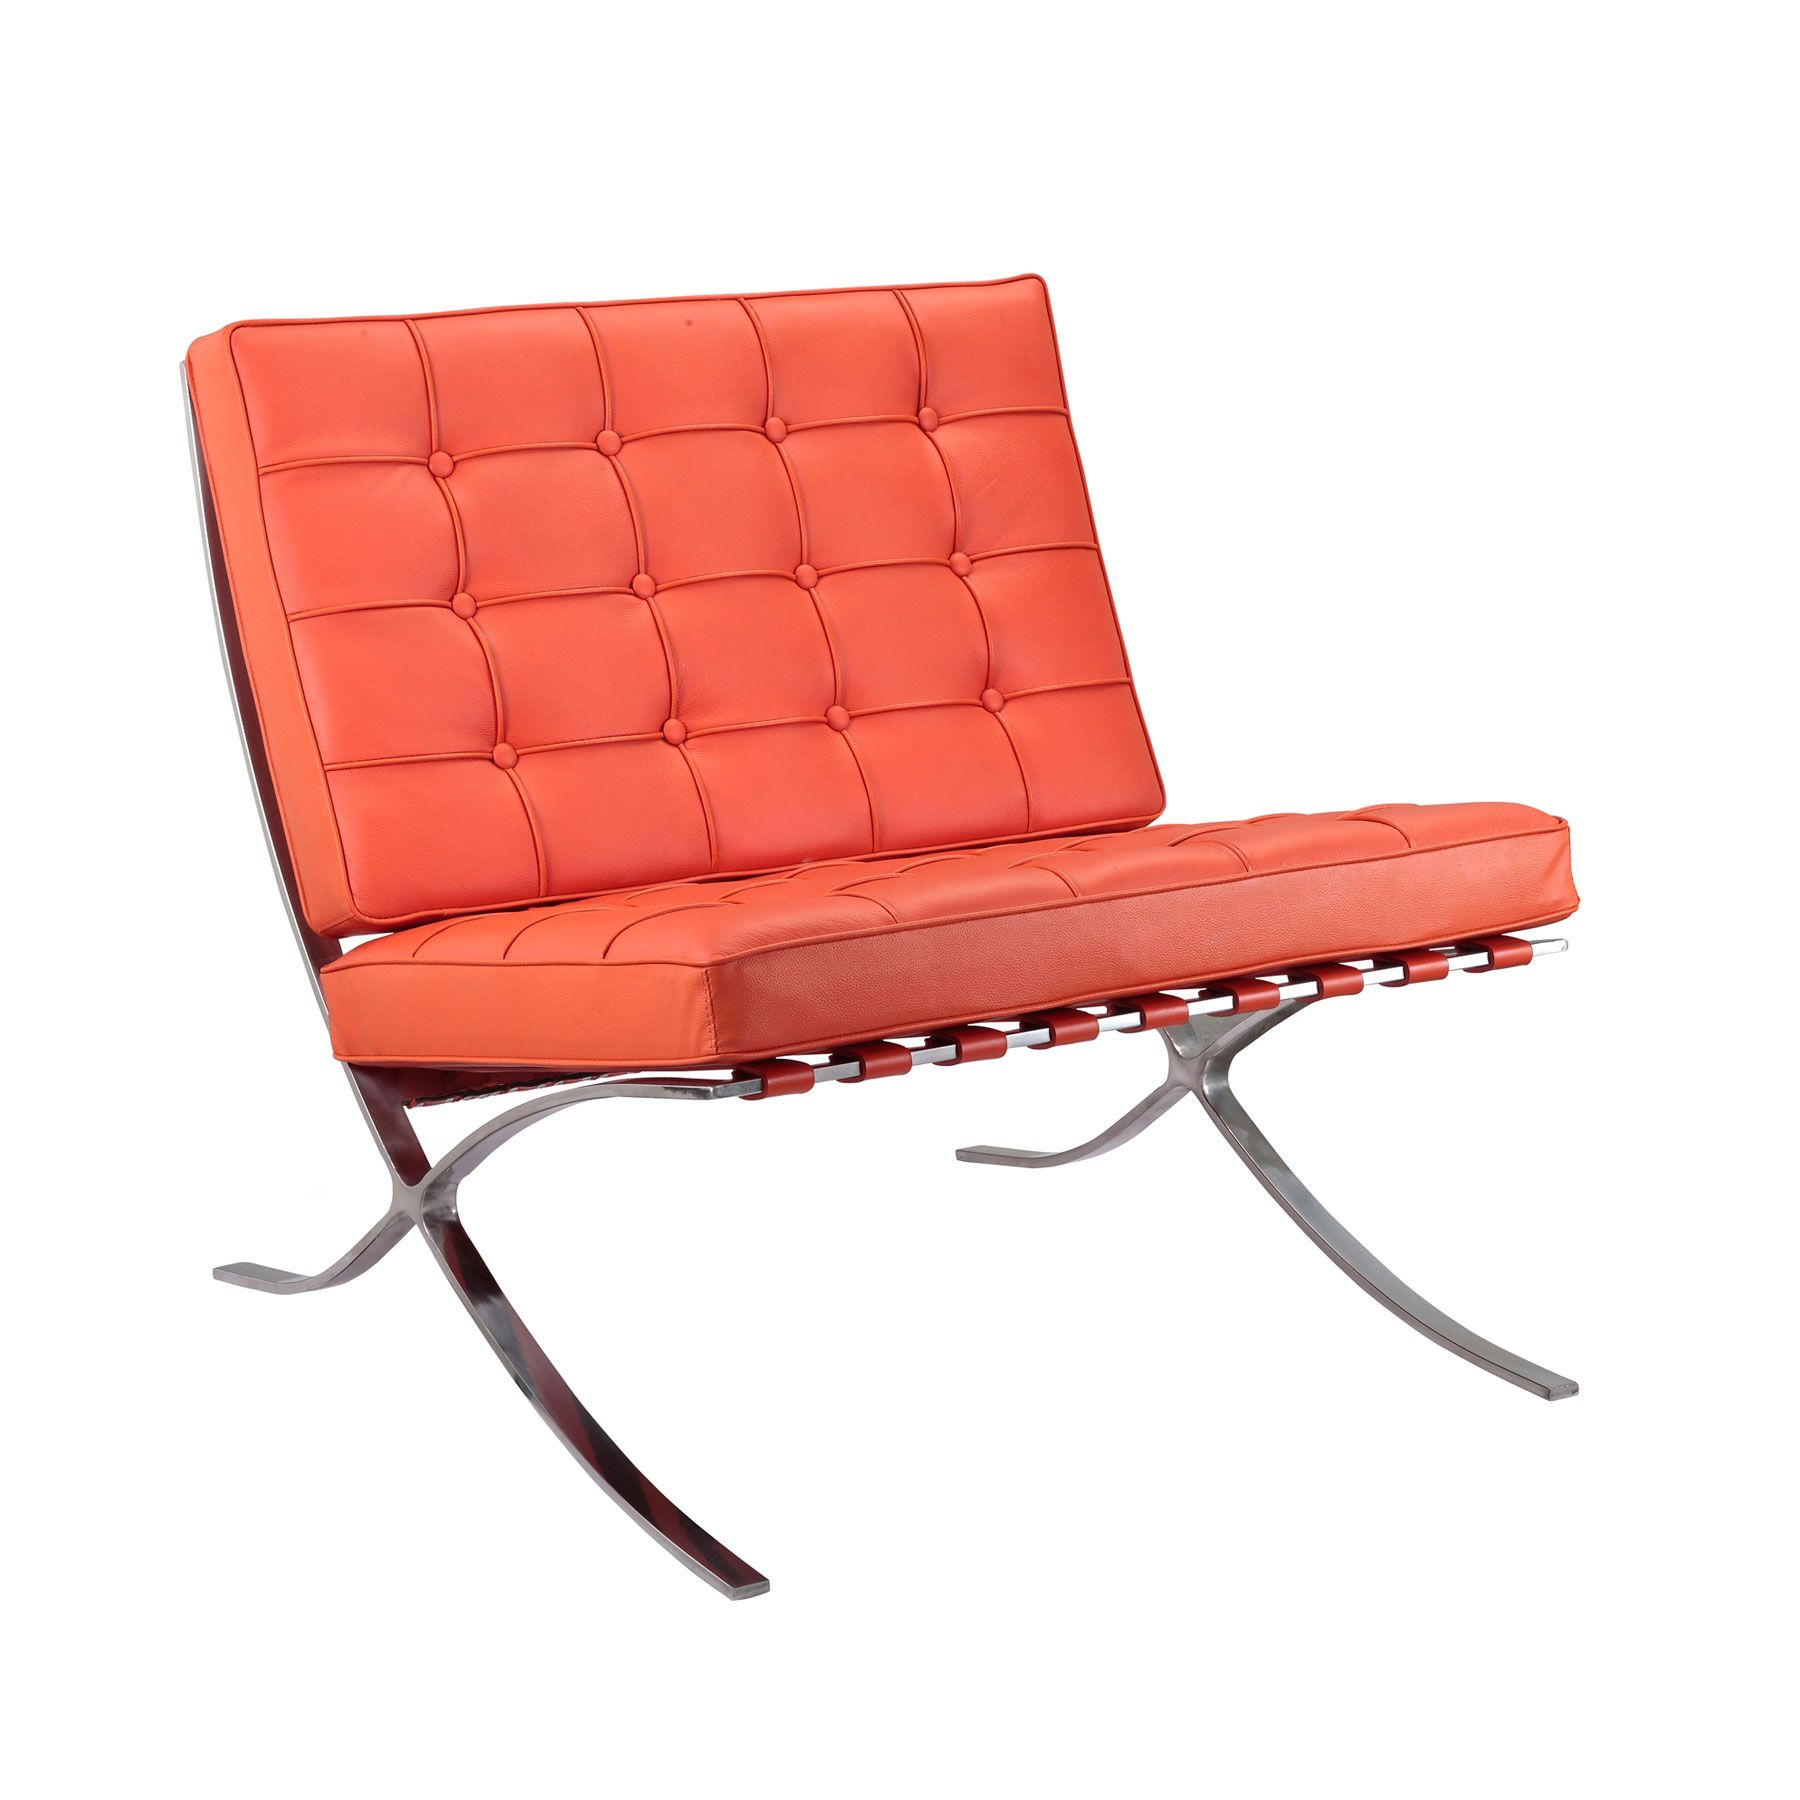 Catalan Chair In Orange Dotandbo Com Urban Mid Century  # Muebles Catalan